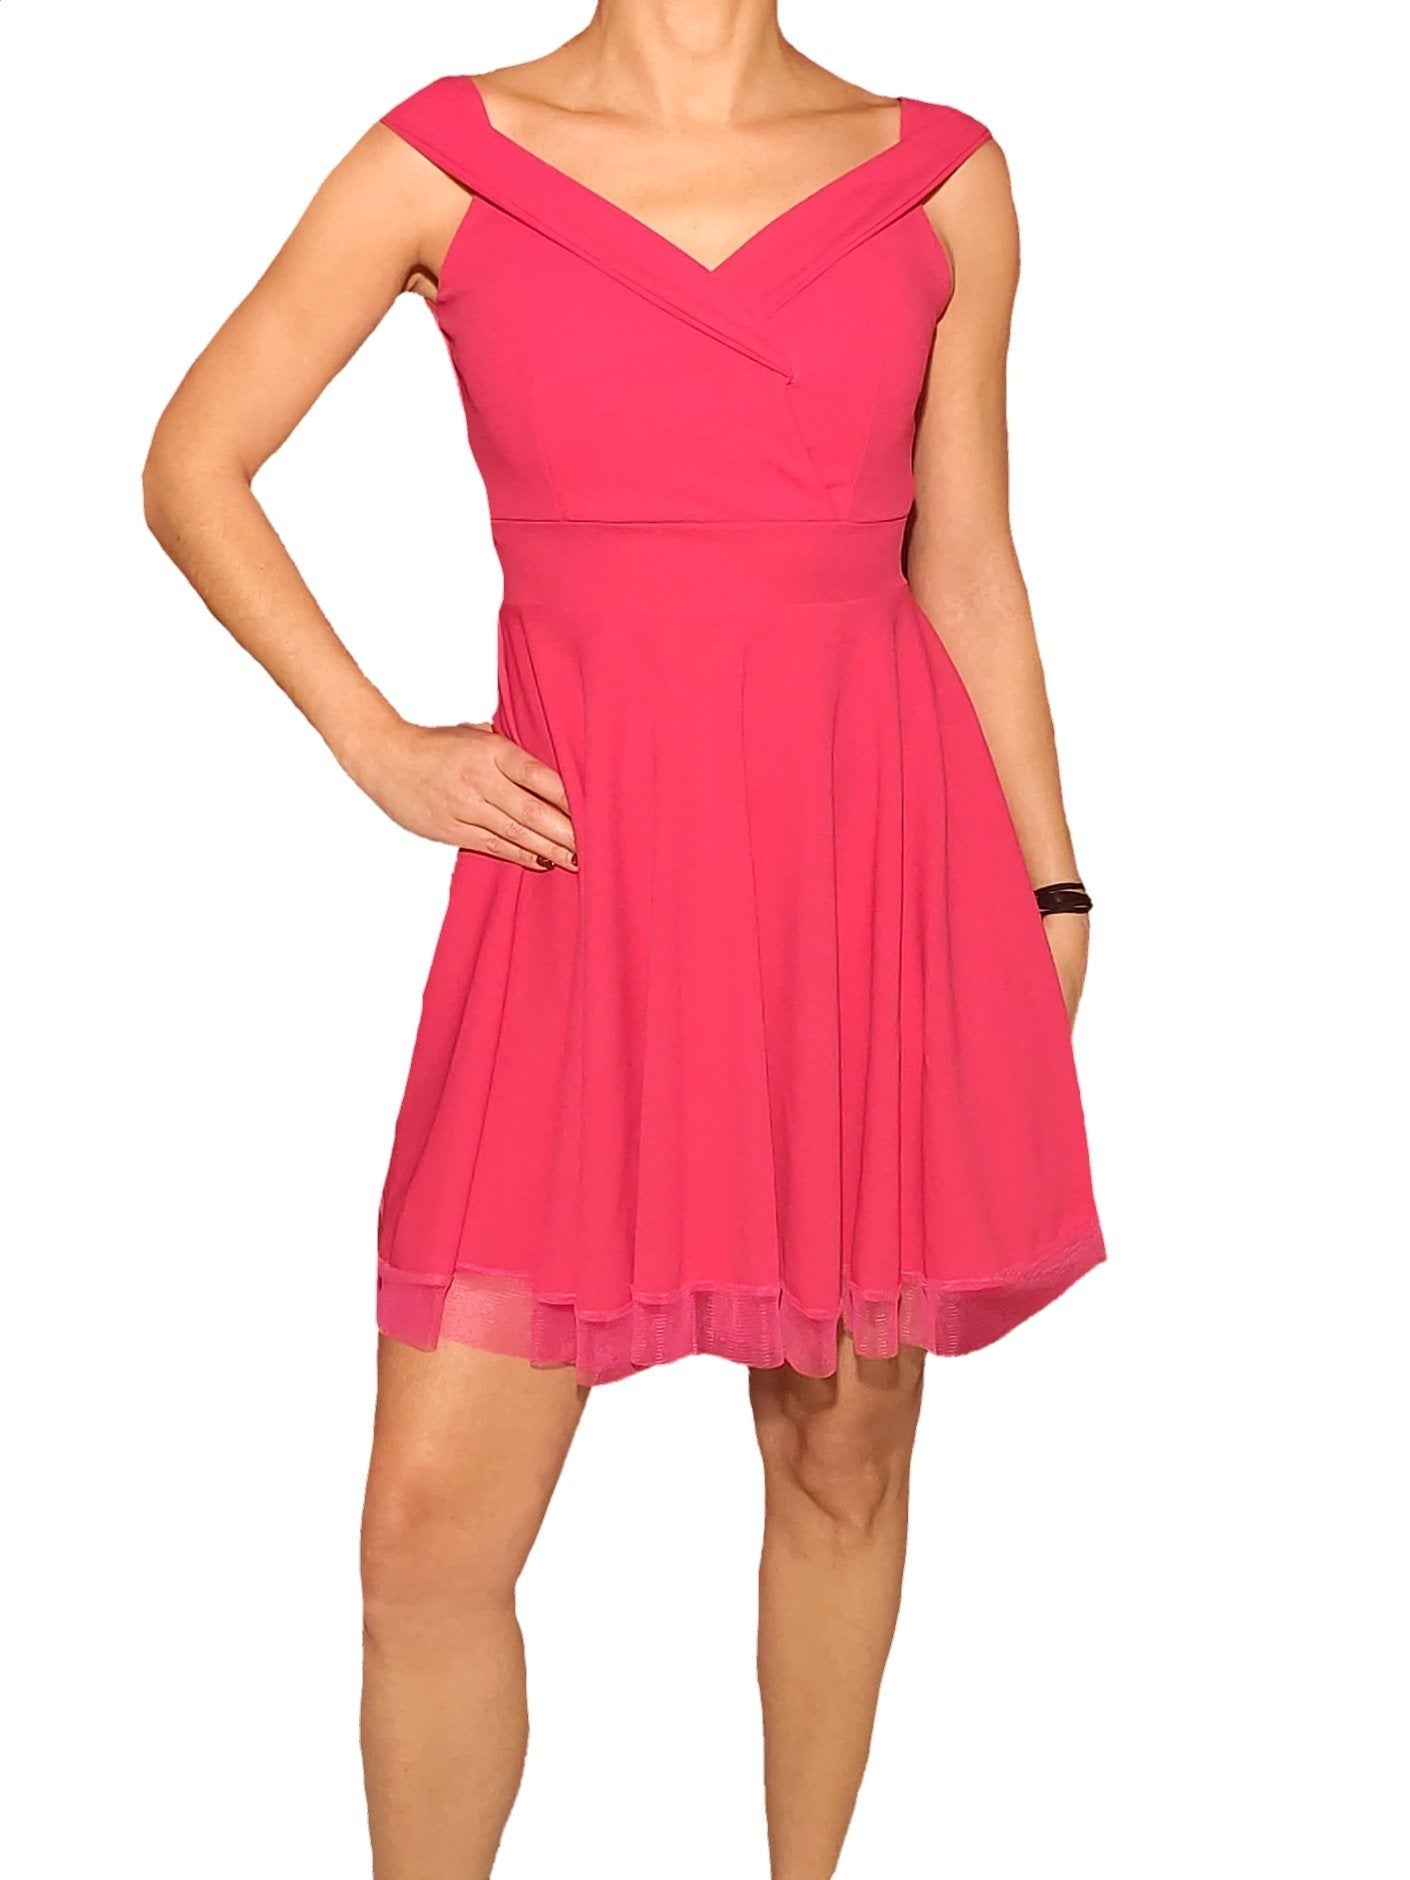 a-woman-wears-a-pink-dress-with-tul-front-side